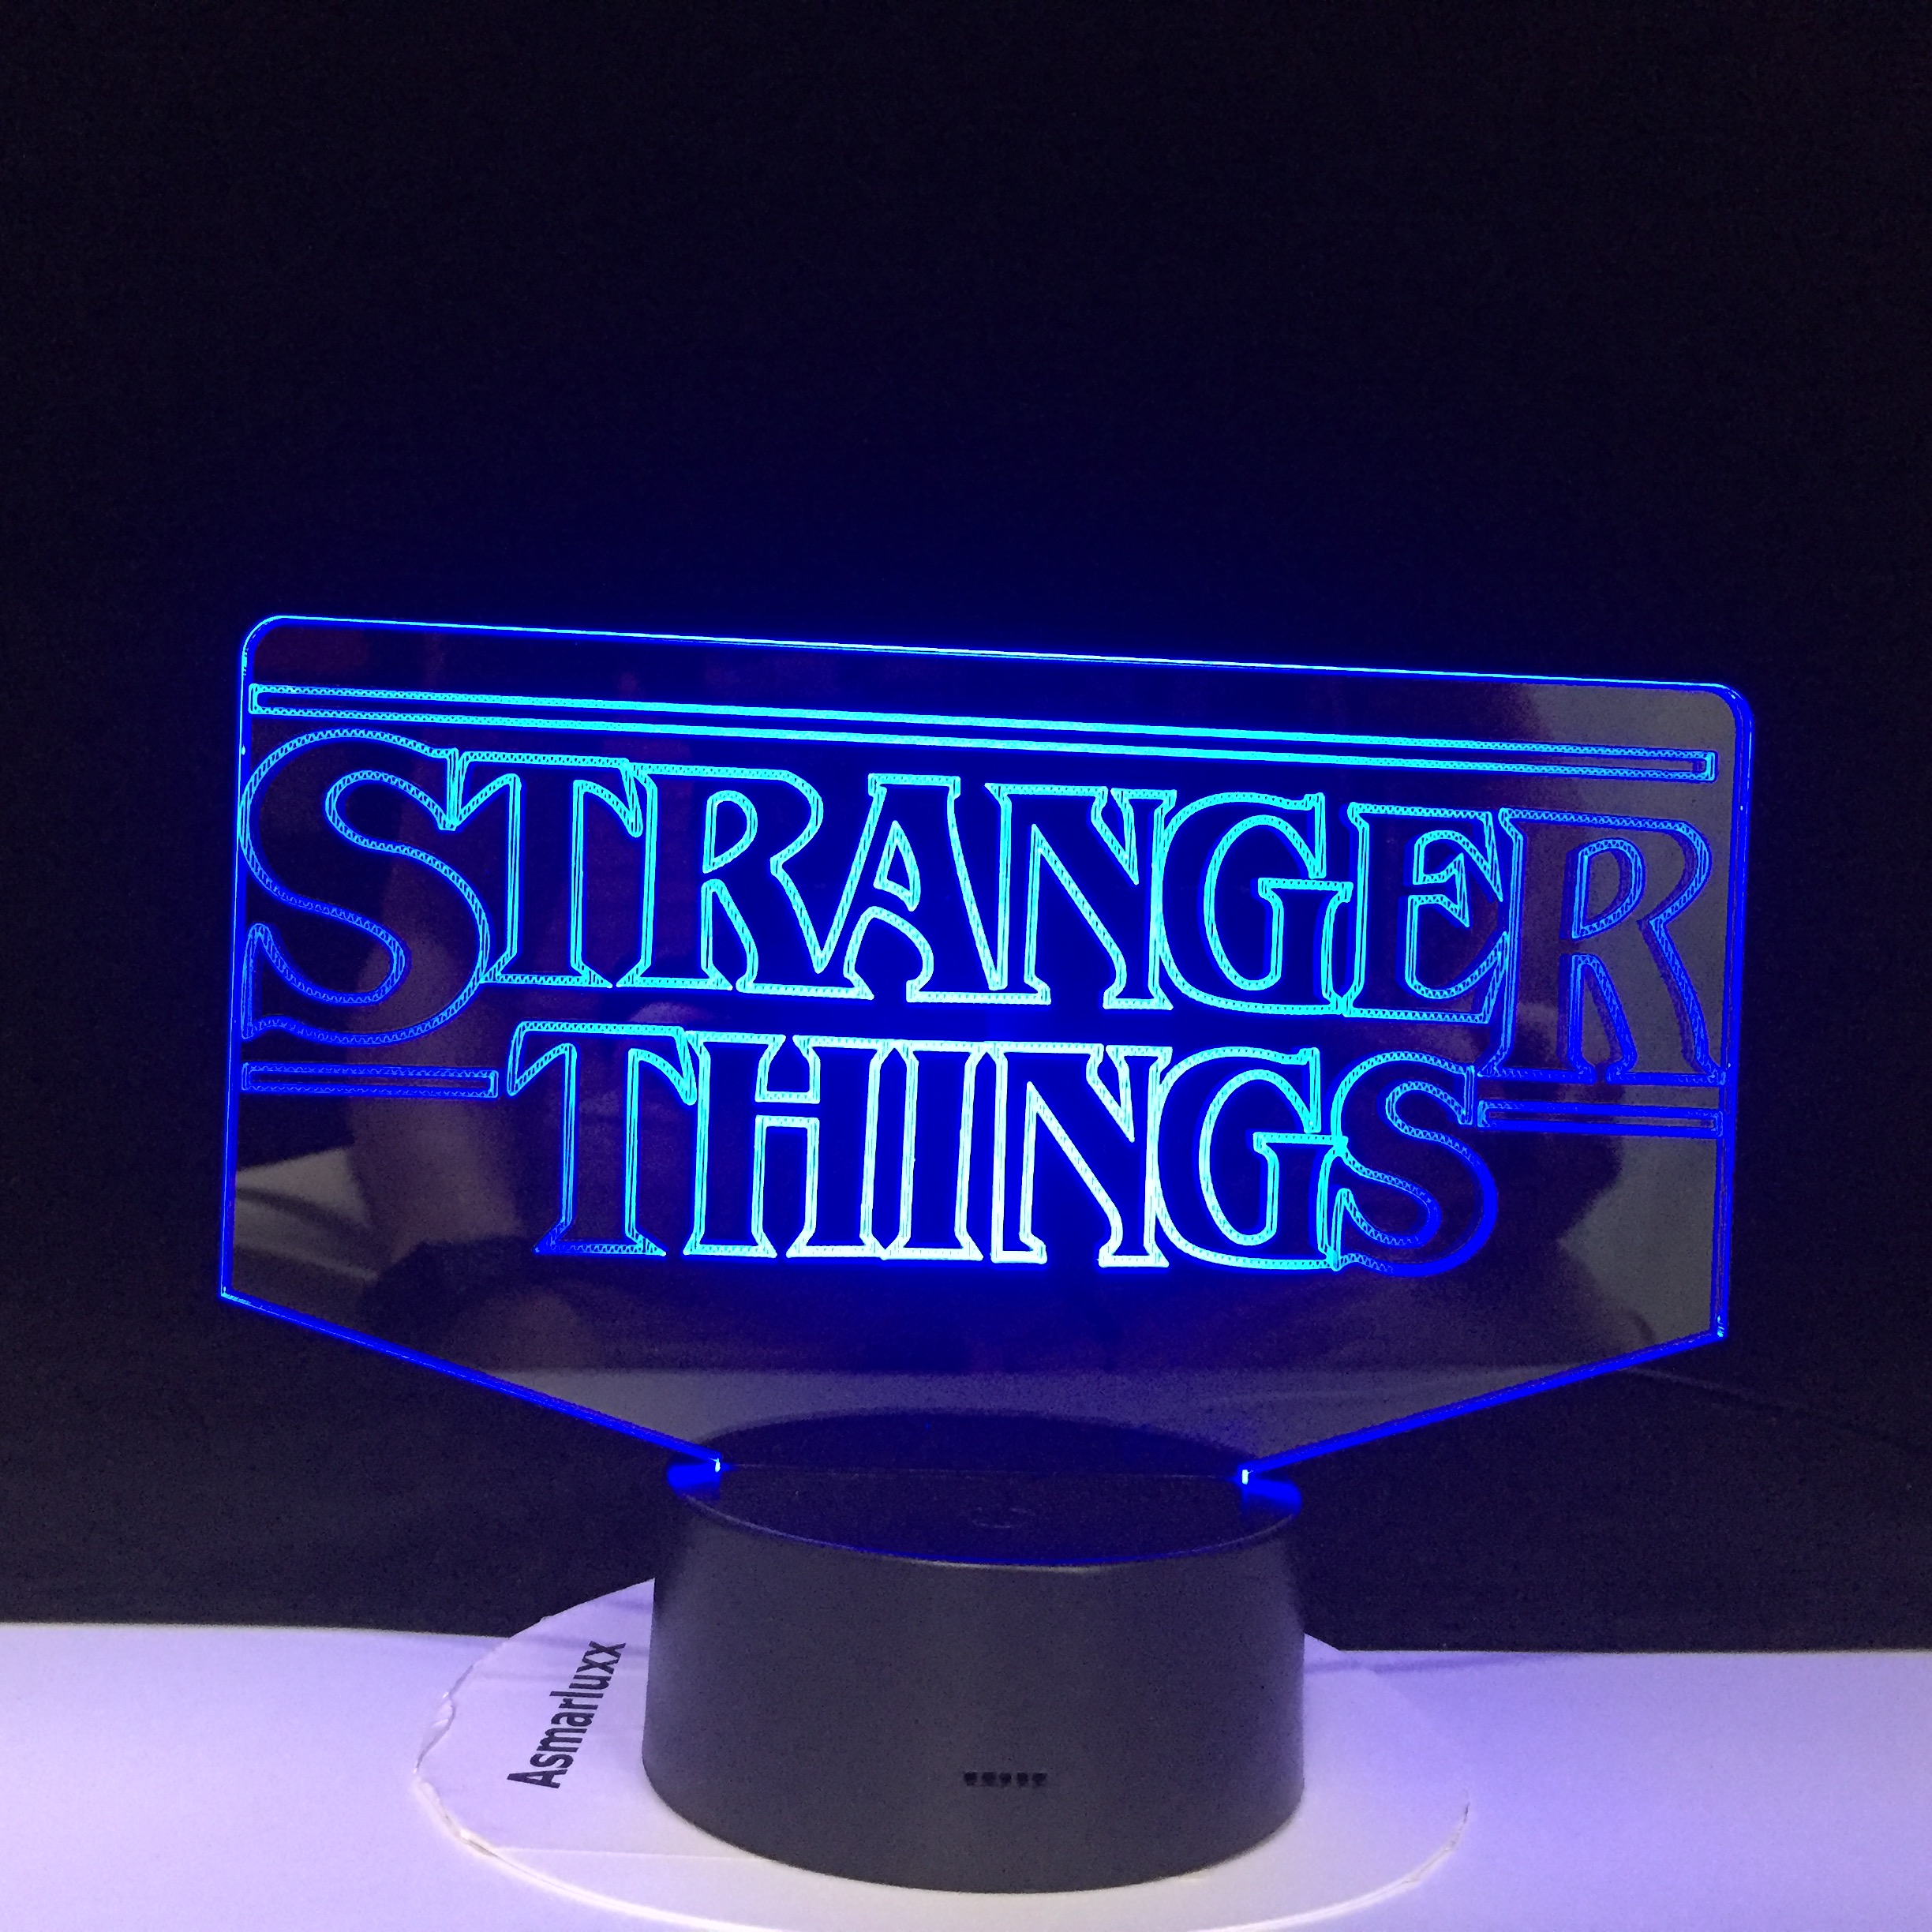 The TV Show Stranger Things 3D LED Lamp Lovely Gift For Baby For Room Decorative Battery Operated Dropship Led Night Light Lamp